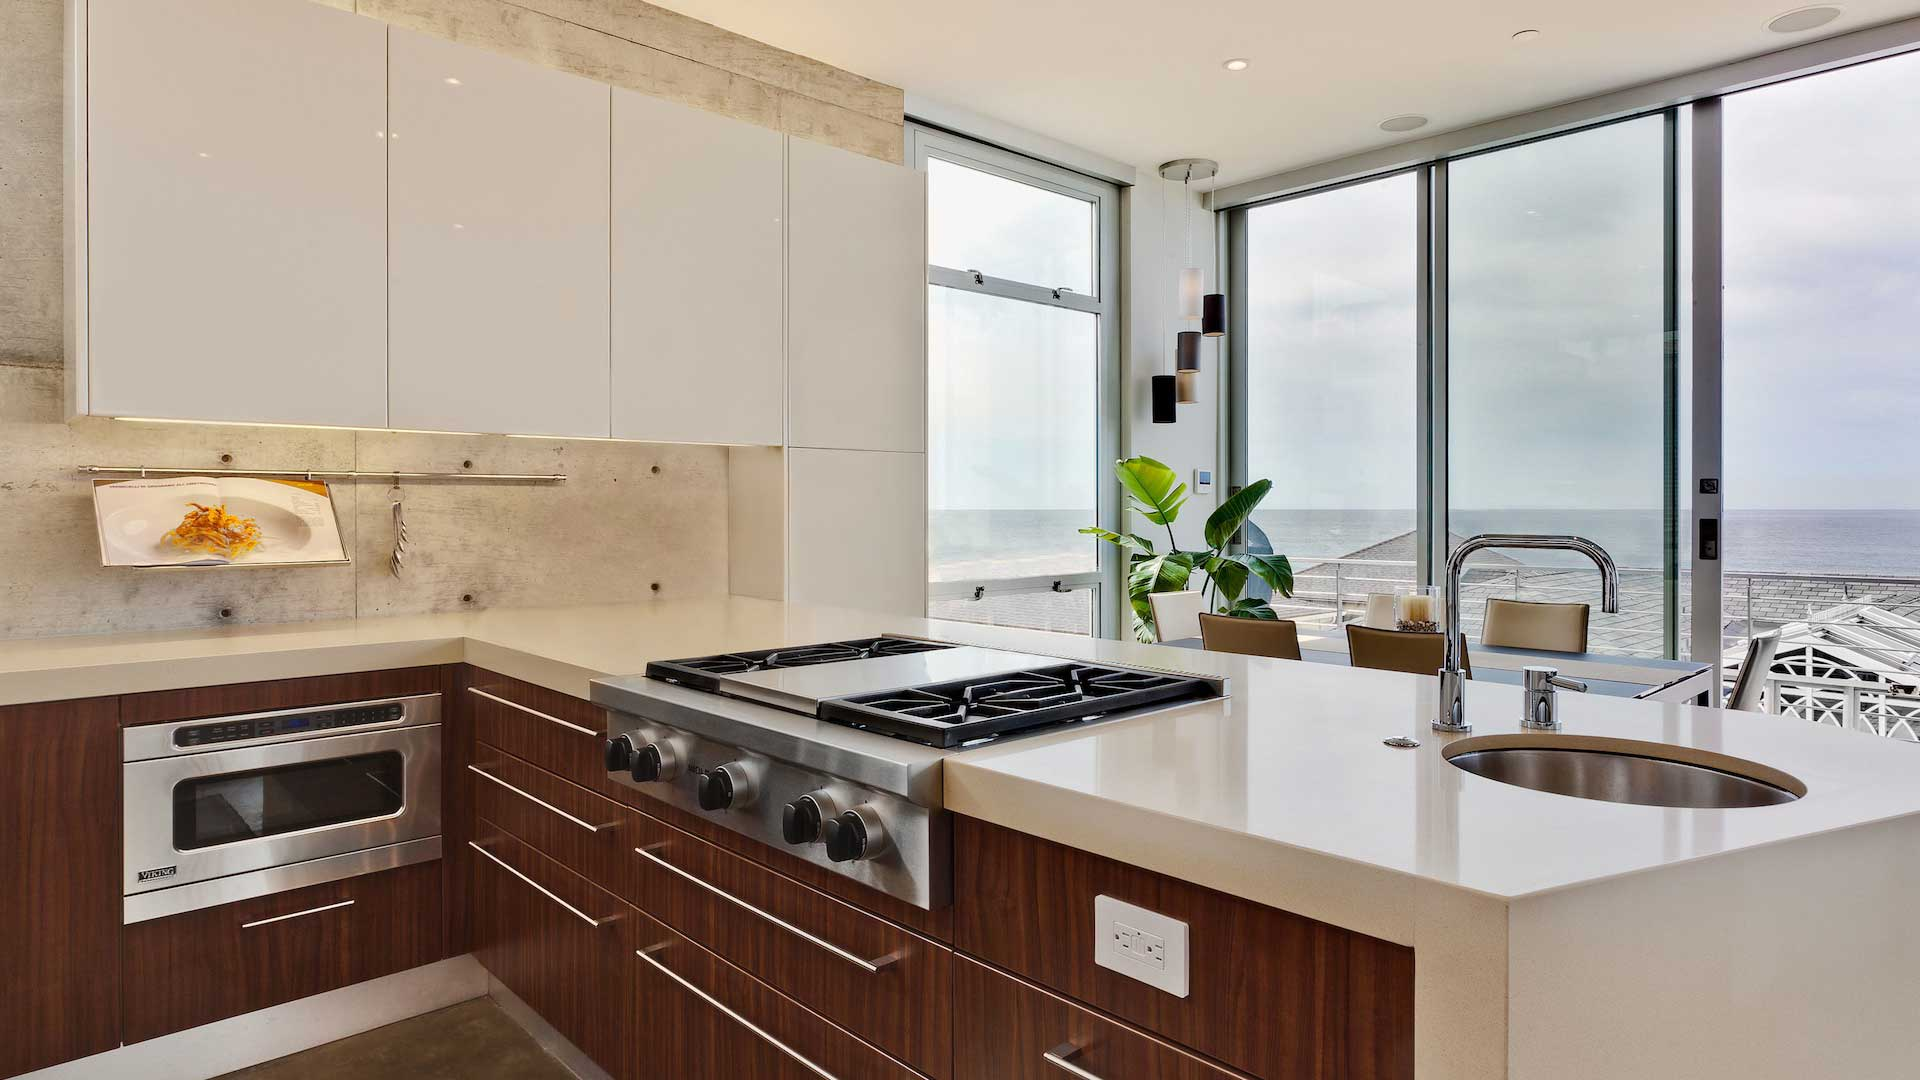 5 Things You Need to Know Before Remodeling Your Kitchen – Remodeling Your Kitchen